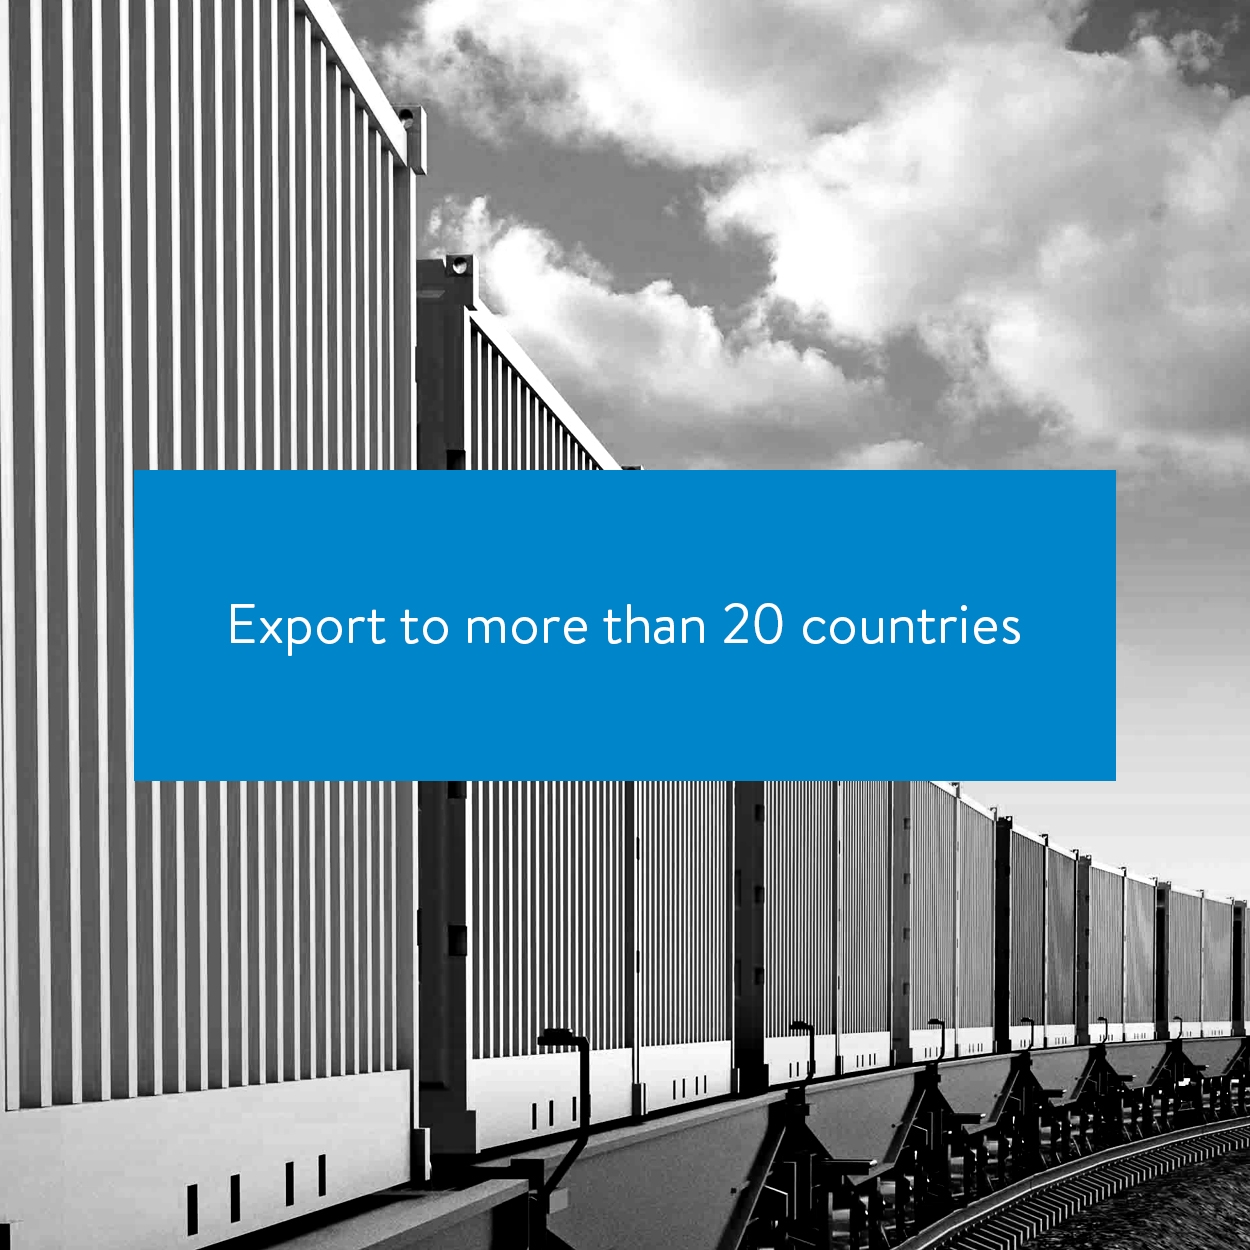 Export to more than 20 countries